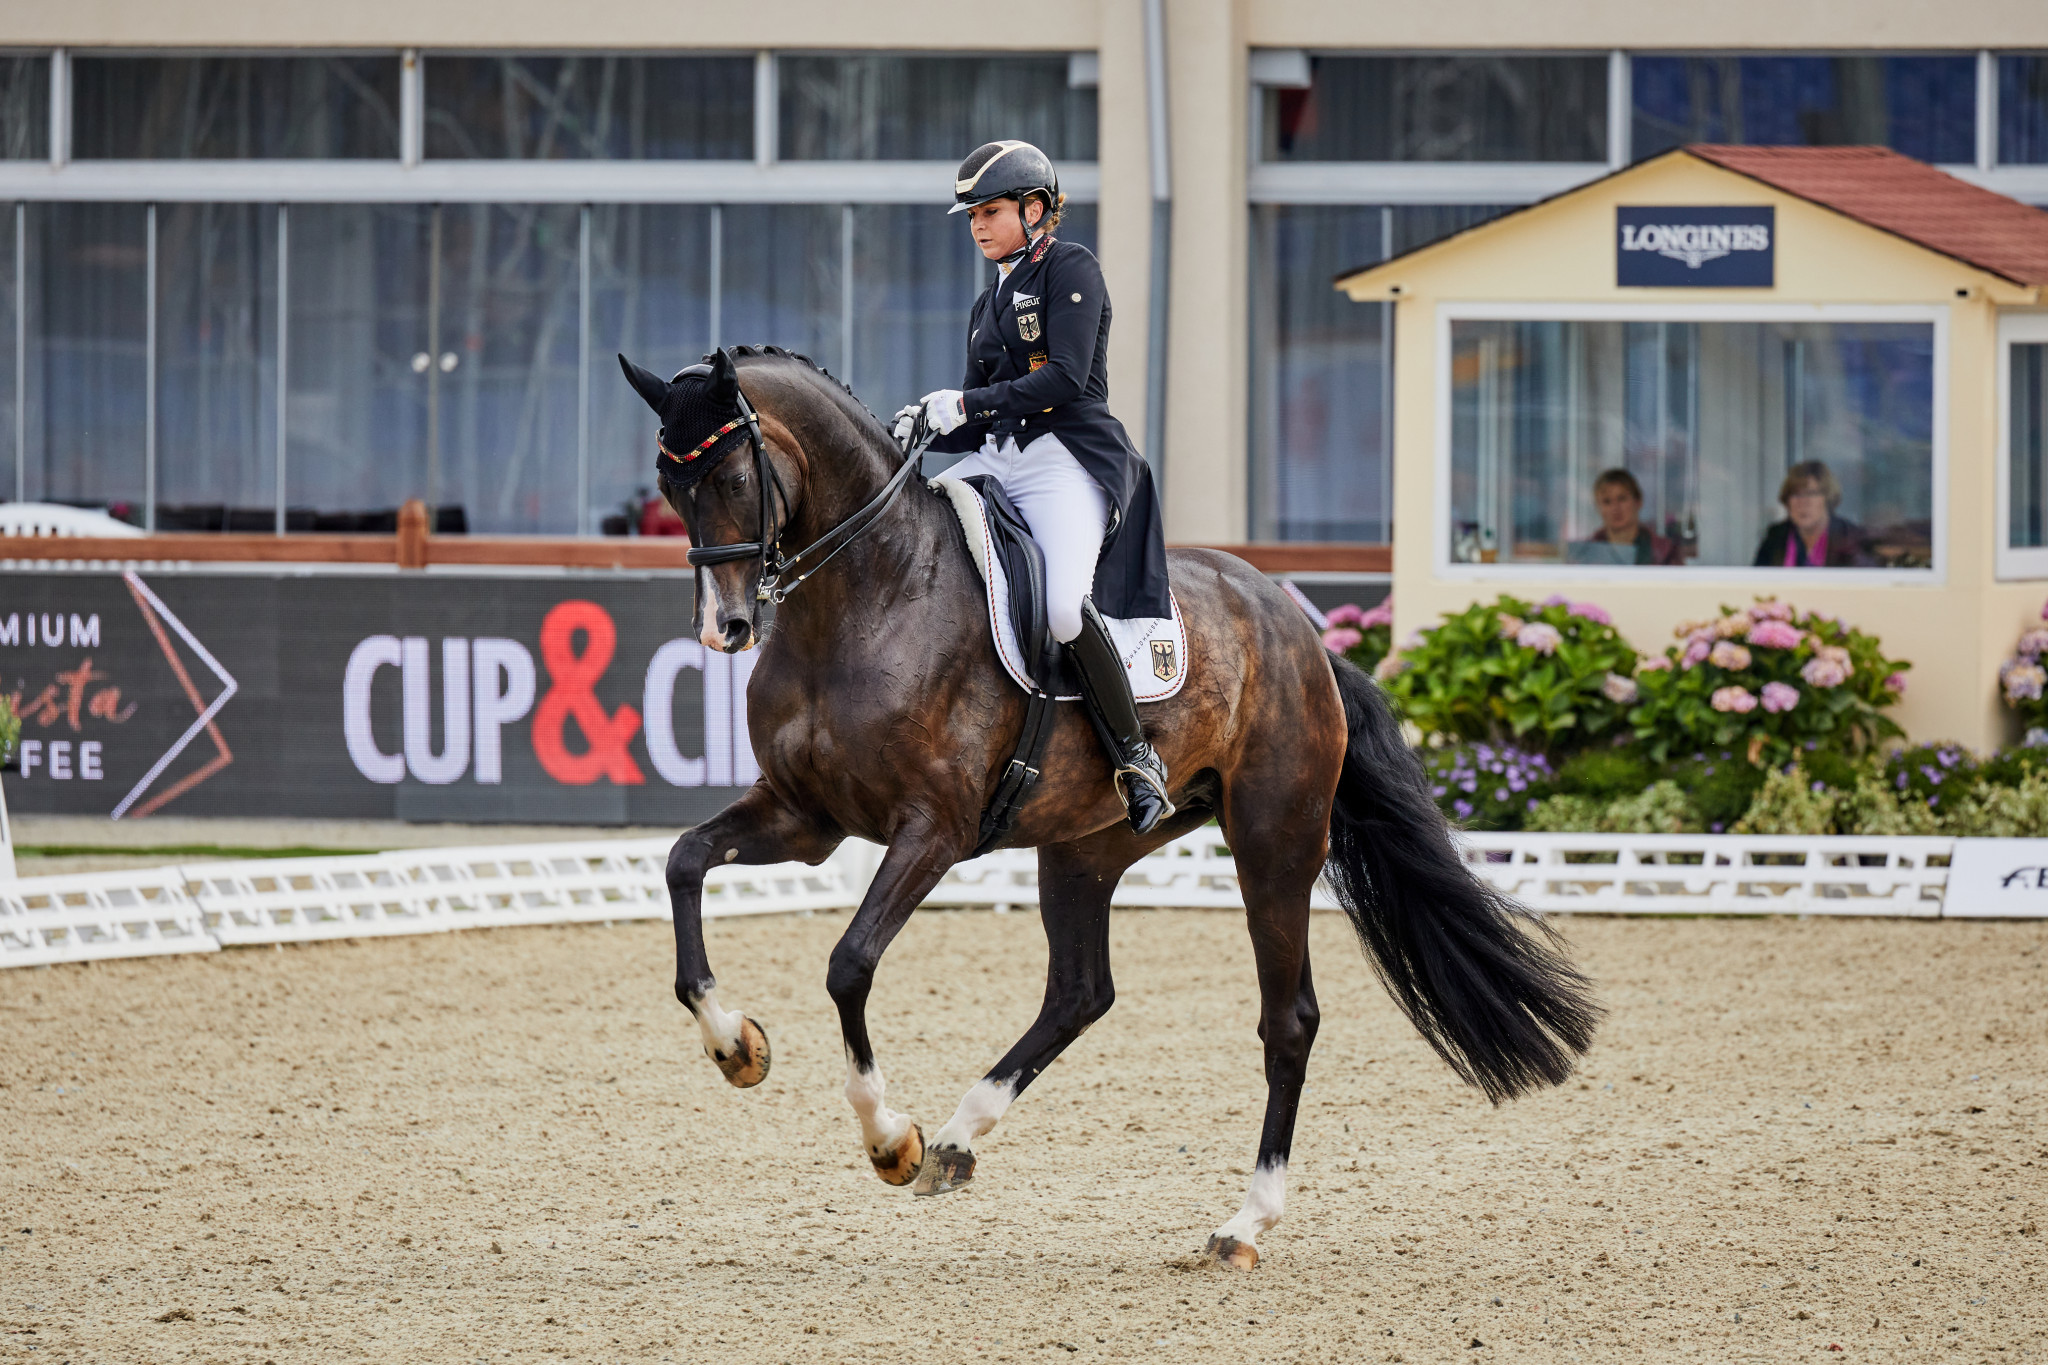 Dorothee Schneider with Faustus contributed 74.985 to Germany's winning total ©FEI/Liz Gregg